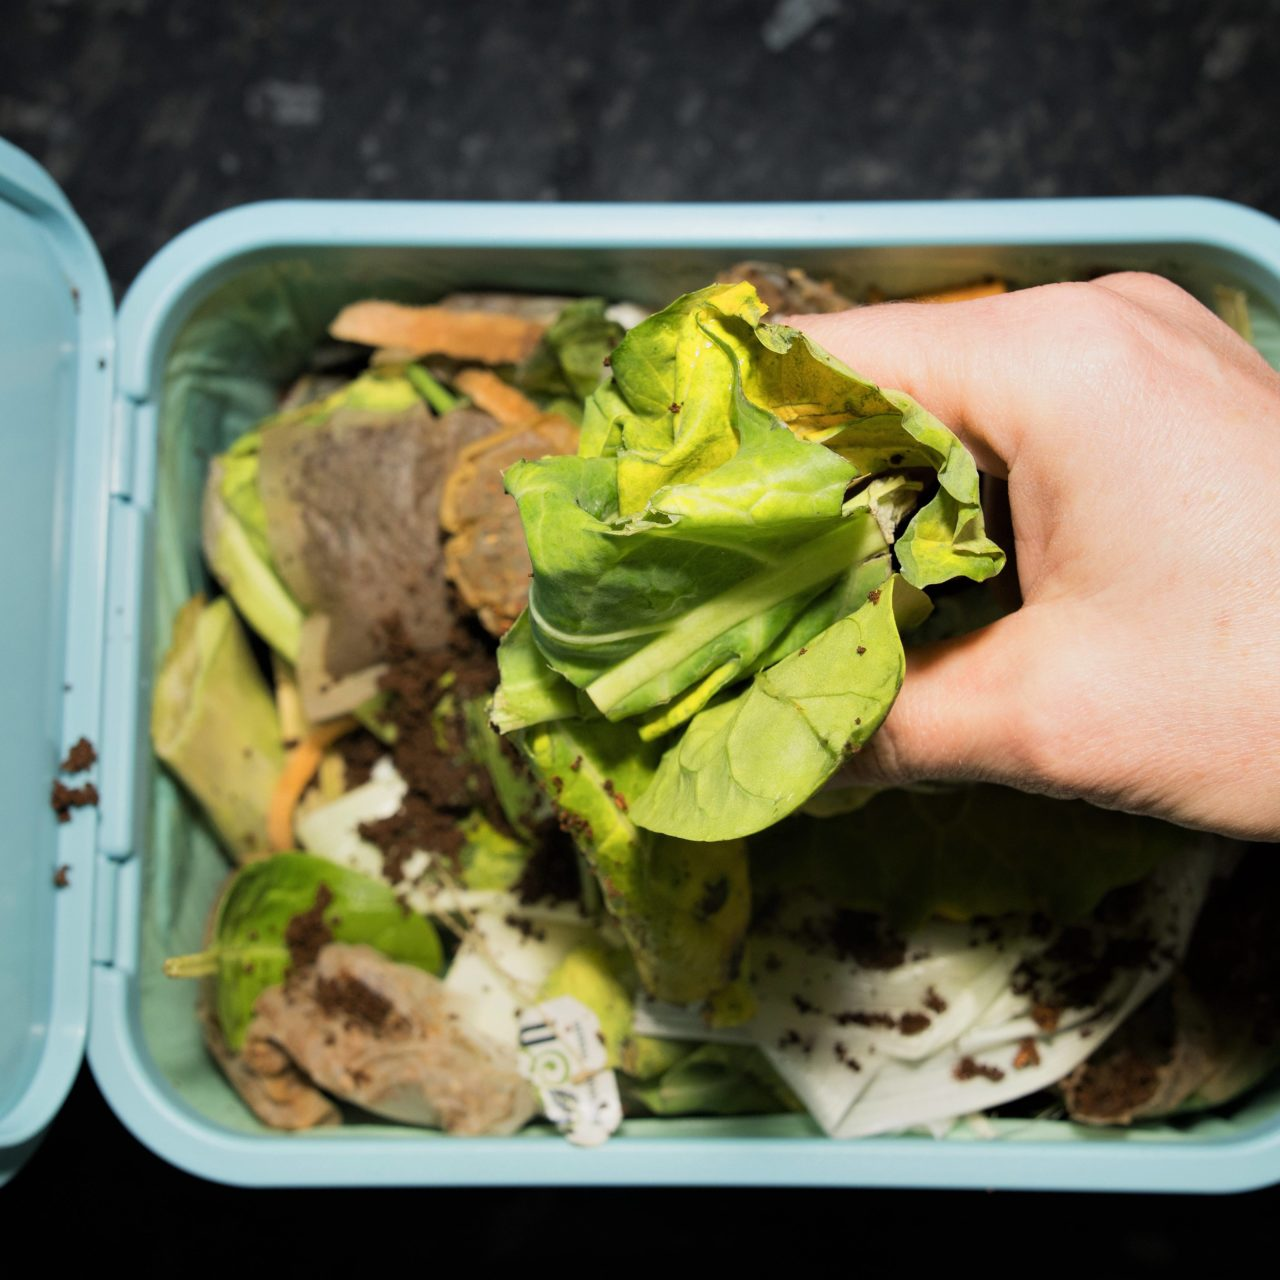 7 ways to reduce your household waste